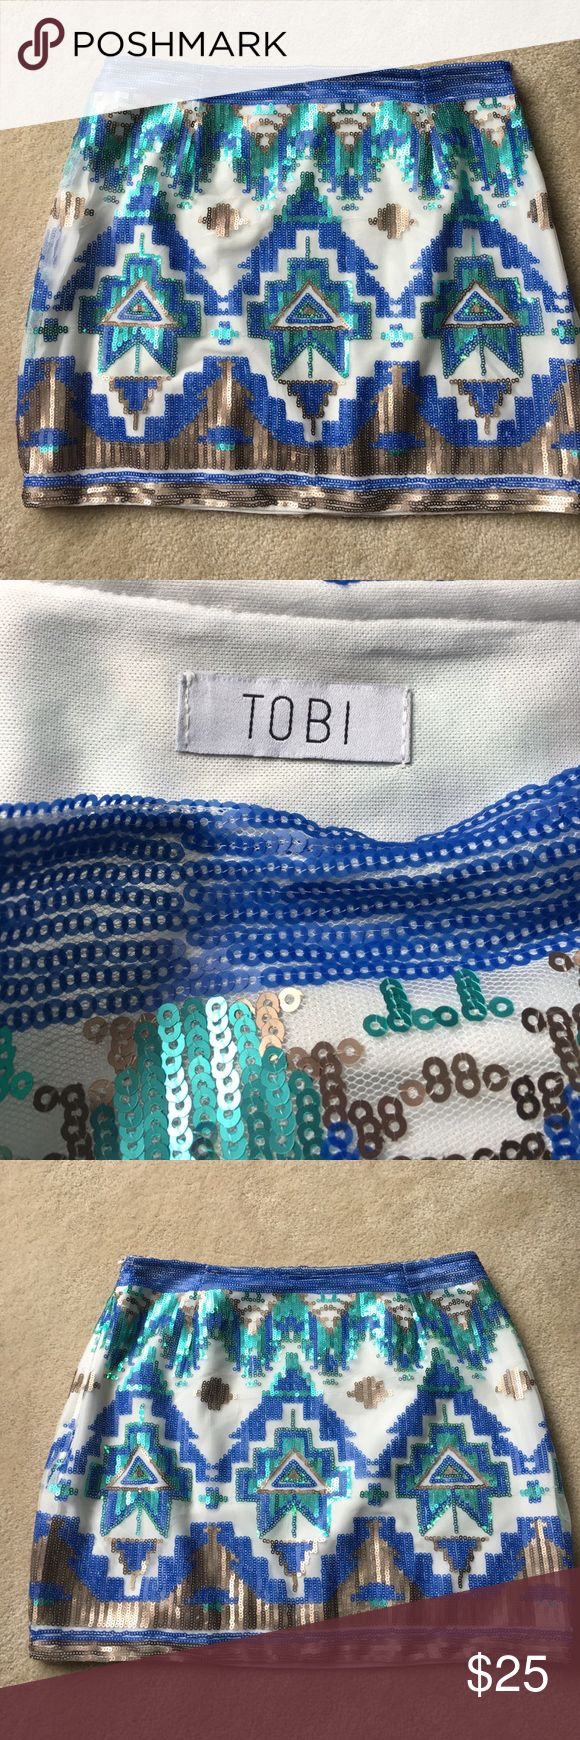 """Tobi Aztec blue, green, and gold sequin mini skirt Tobi blue, green, and gold/copper Aztec pattern sequin mini skirt.  Sequins are sewn onto a mesh fabric, which overlays white fabric underneath. Side zip closure with hook & eye clasp, but the eye needs sewn back down on one side. Otherwise excellent condition. Size tag says large, but length is 14"""", waist is 28"""". Tobi Skirts Mini"""